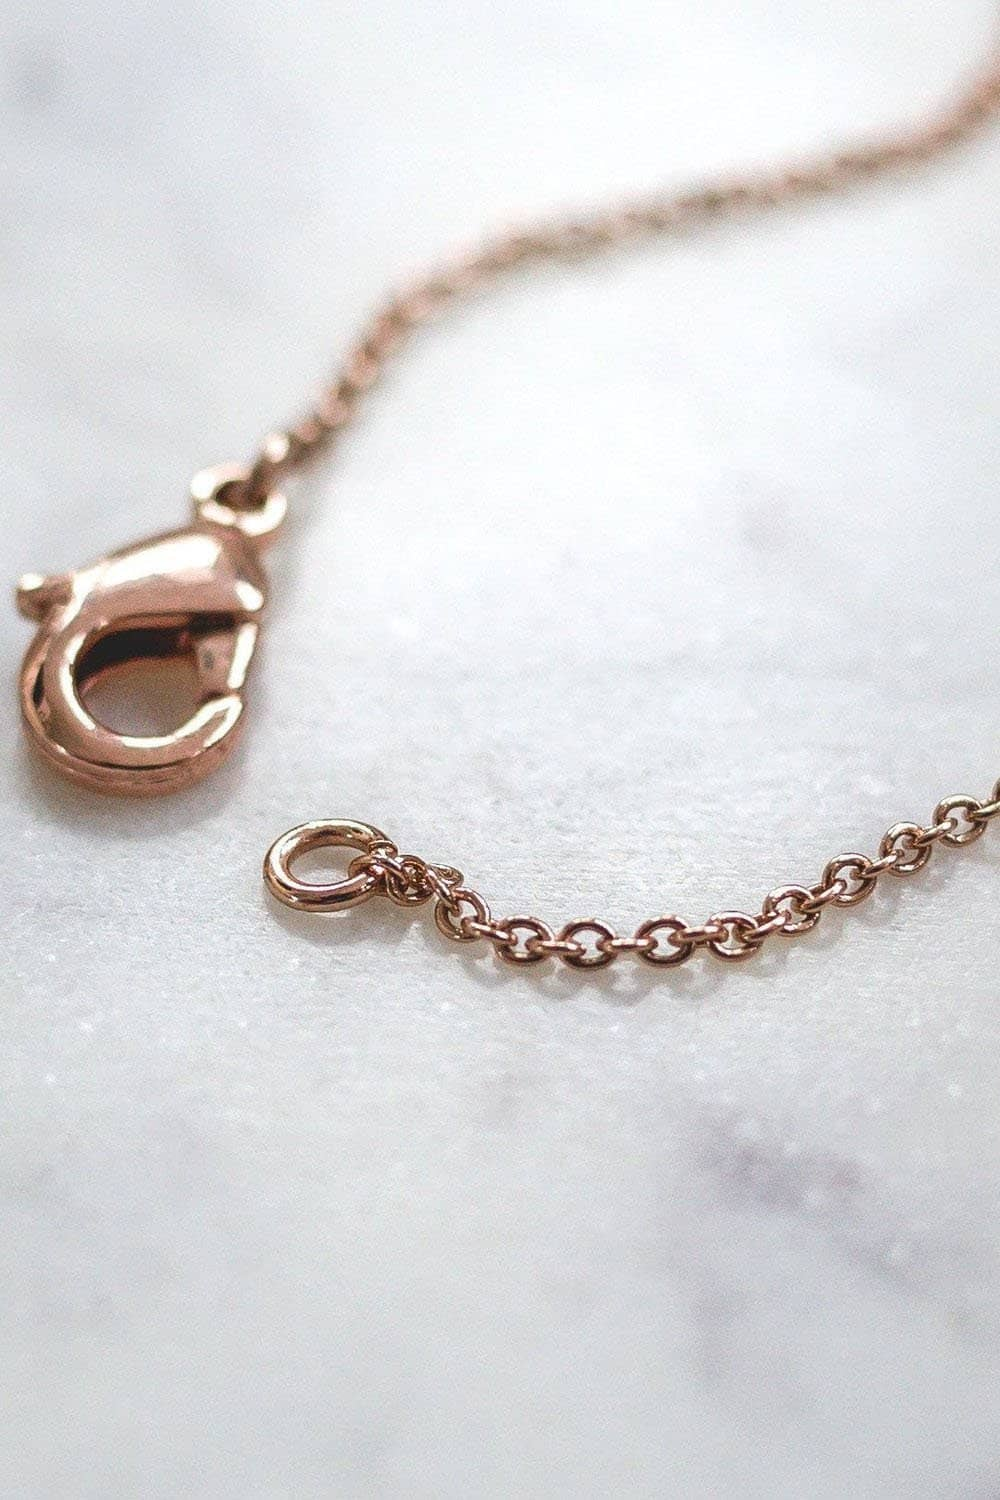 Rose Gold Solid Charm Necklace - Ivory Ella - Jewelry